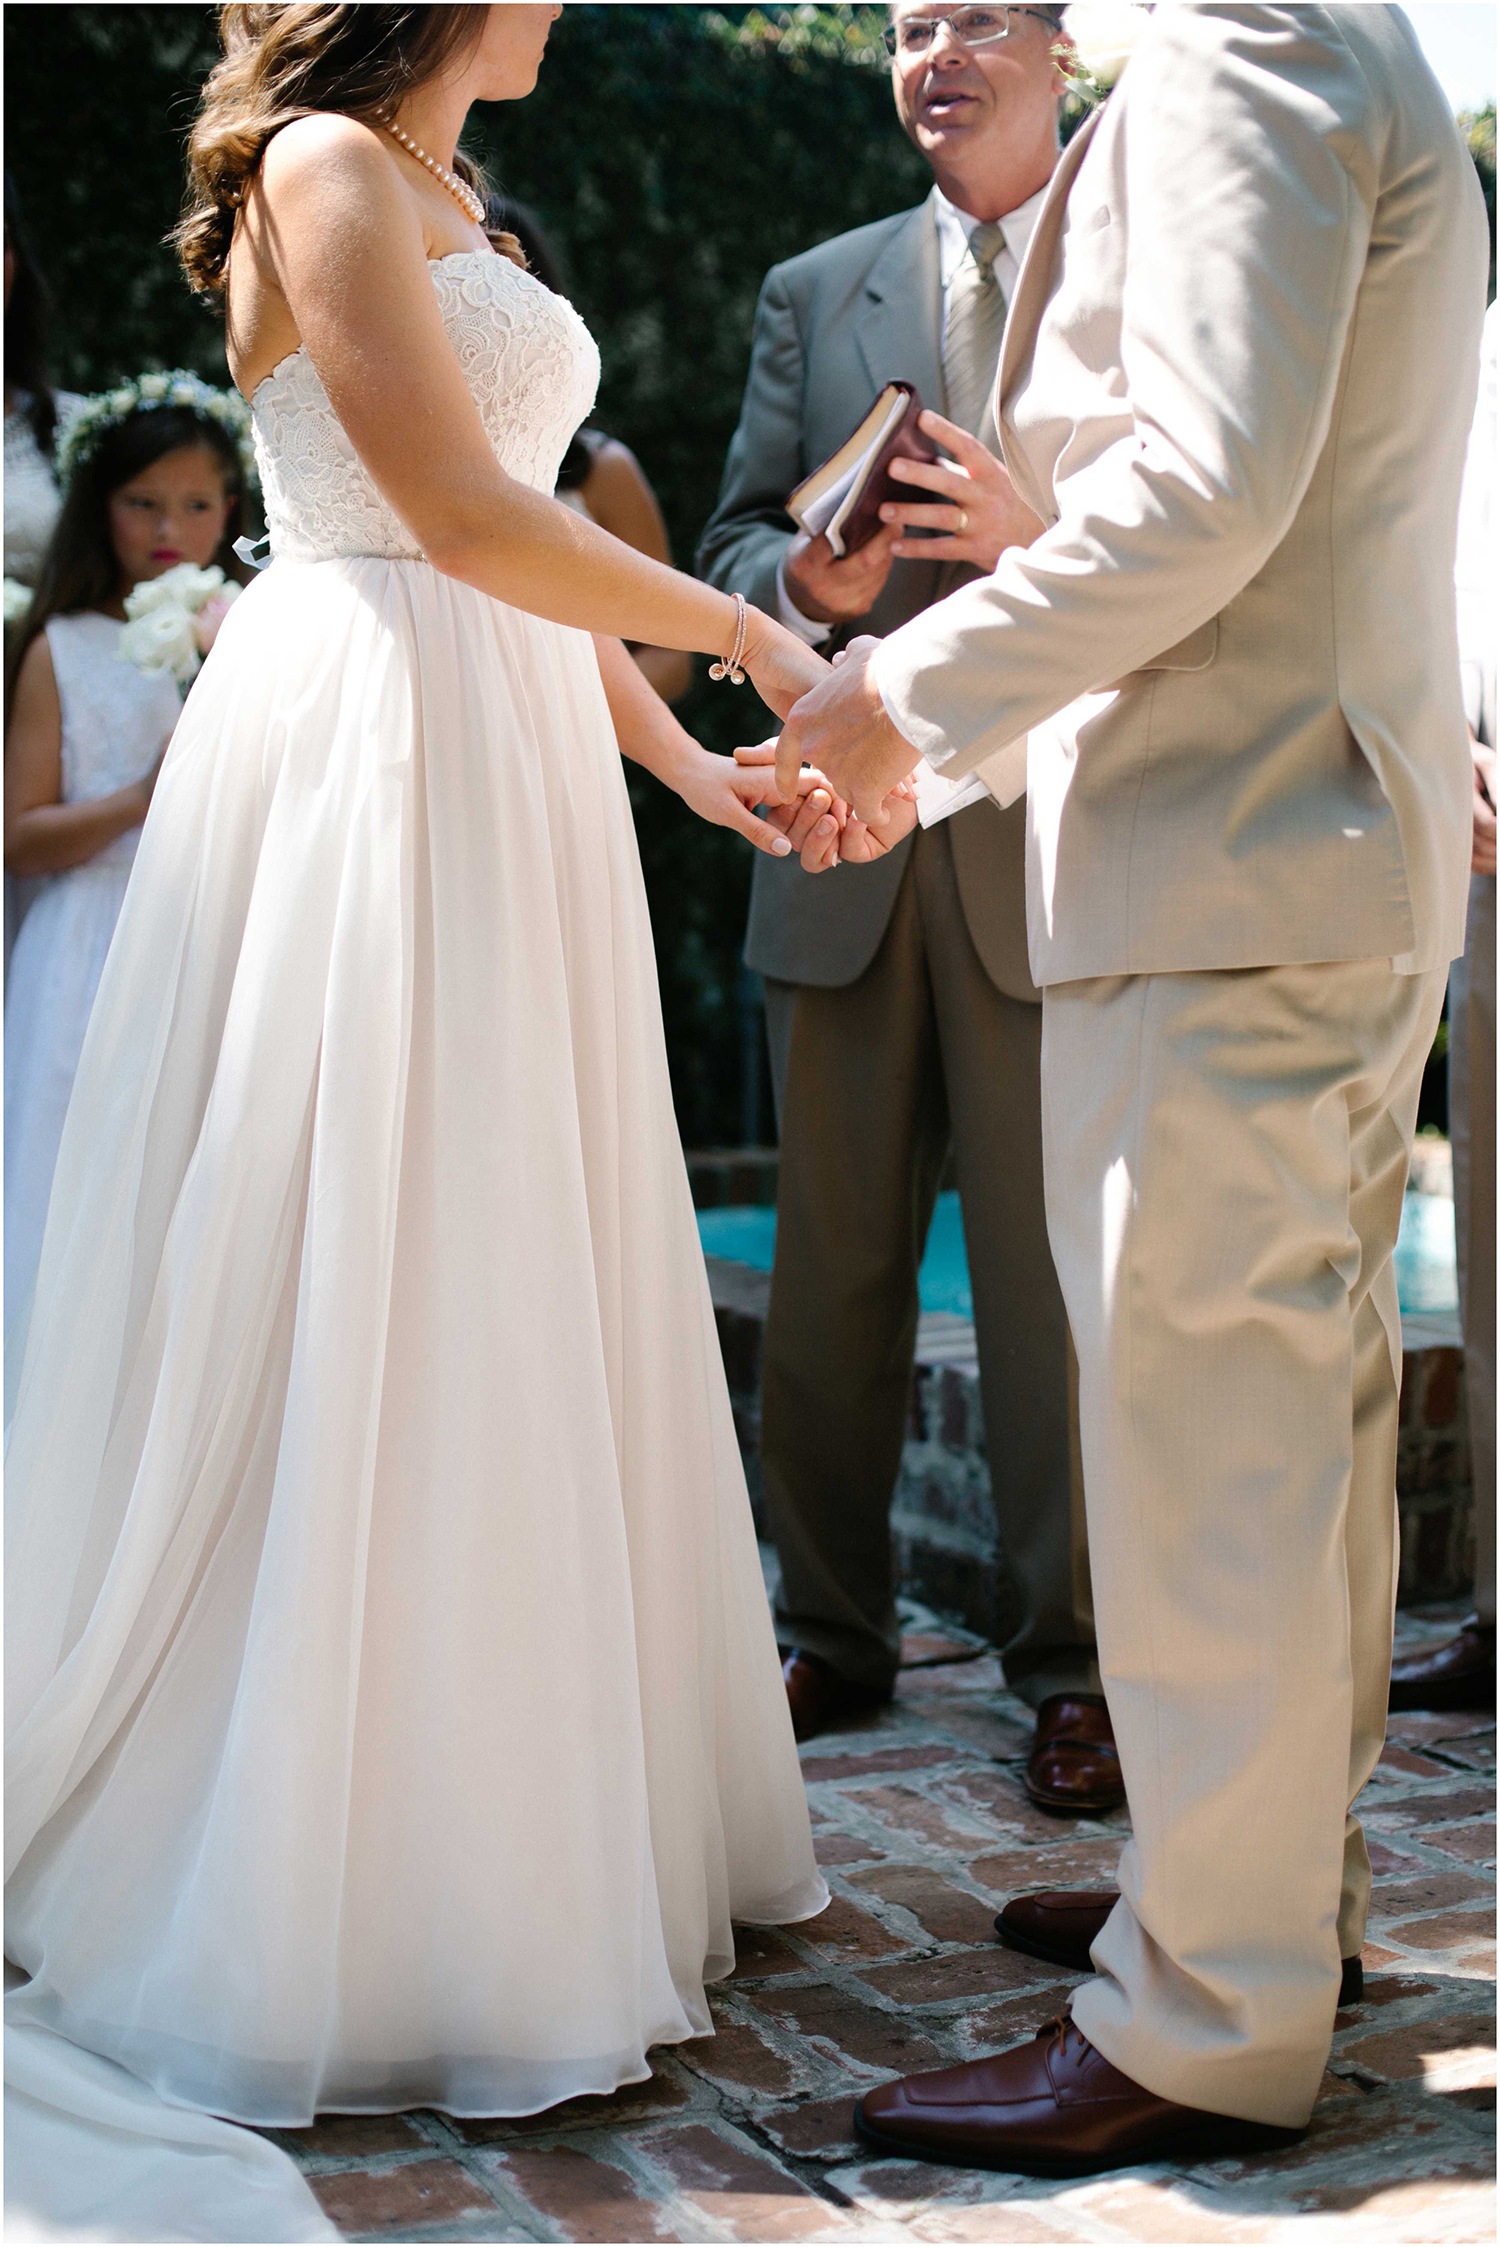 Gulf_Coast_Wedding_Photographer_0011.jpg